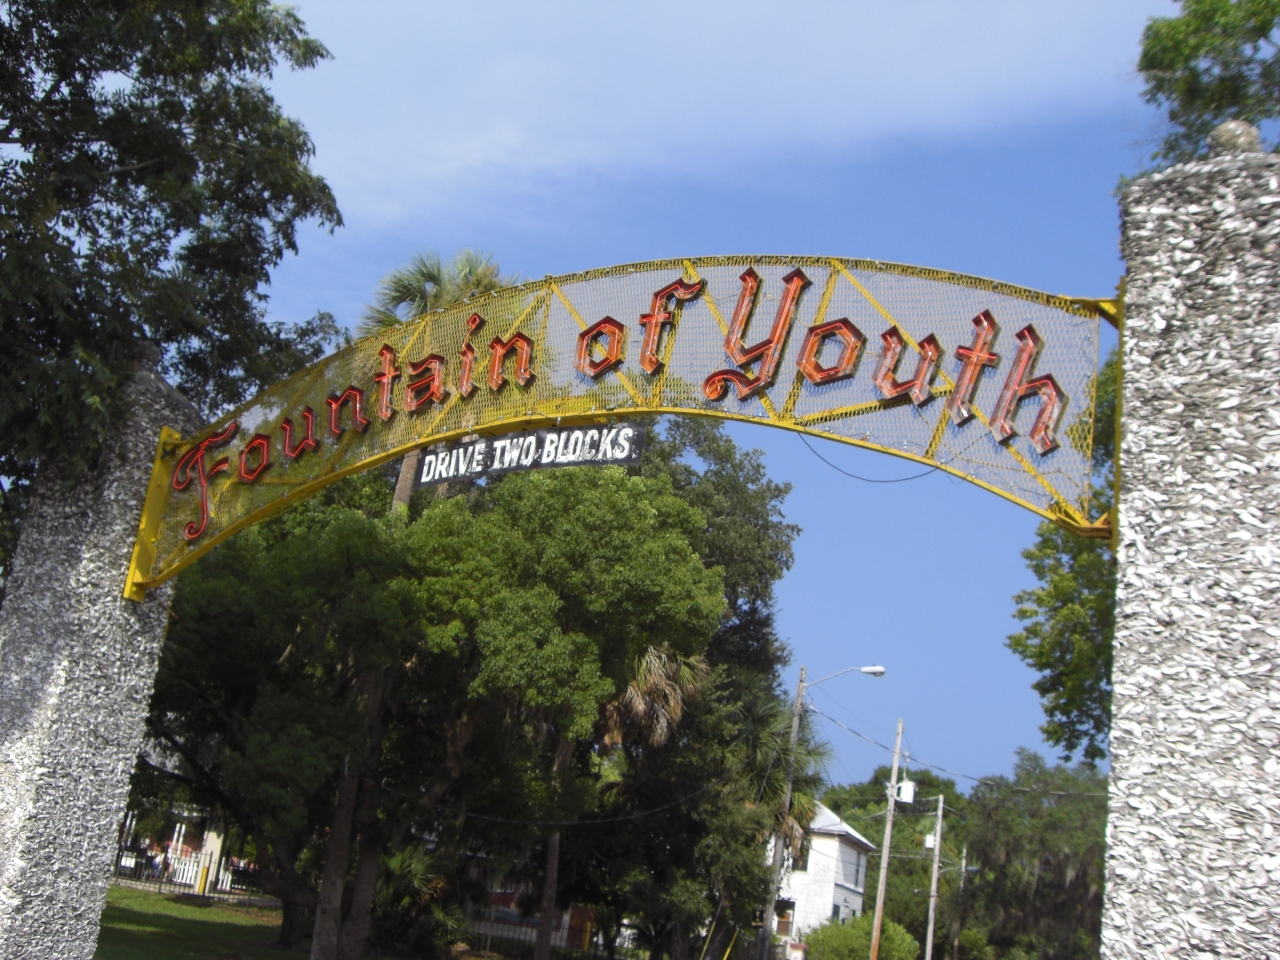 Fountain of Youth 2